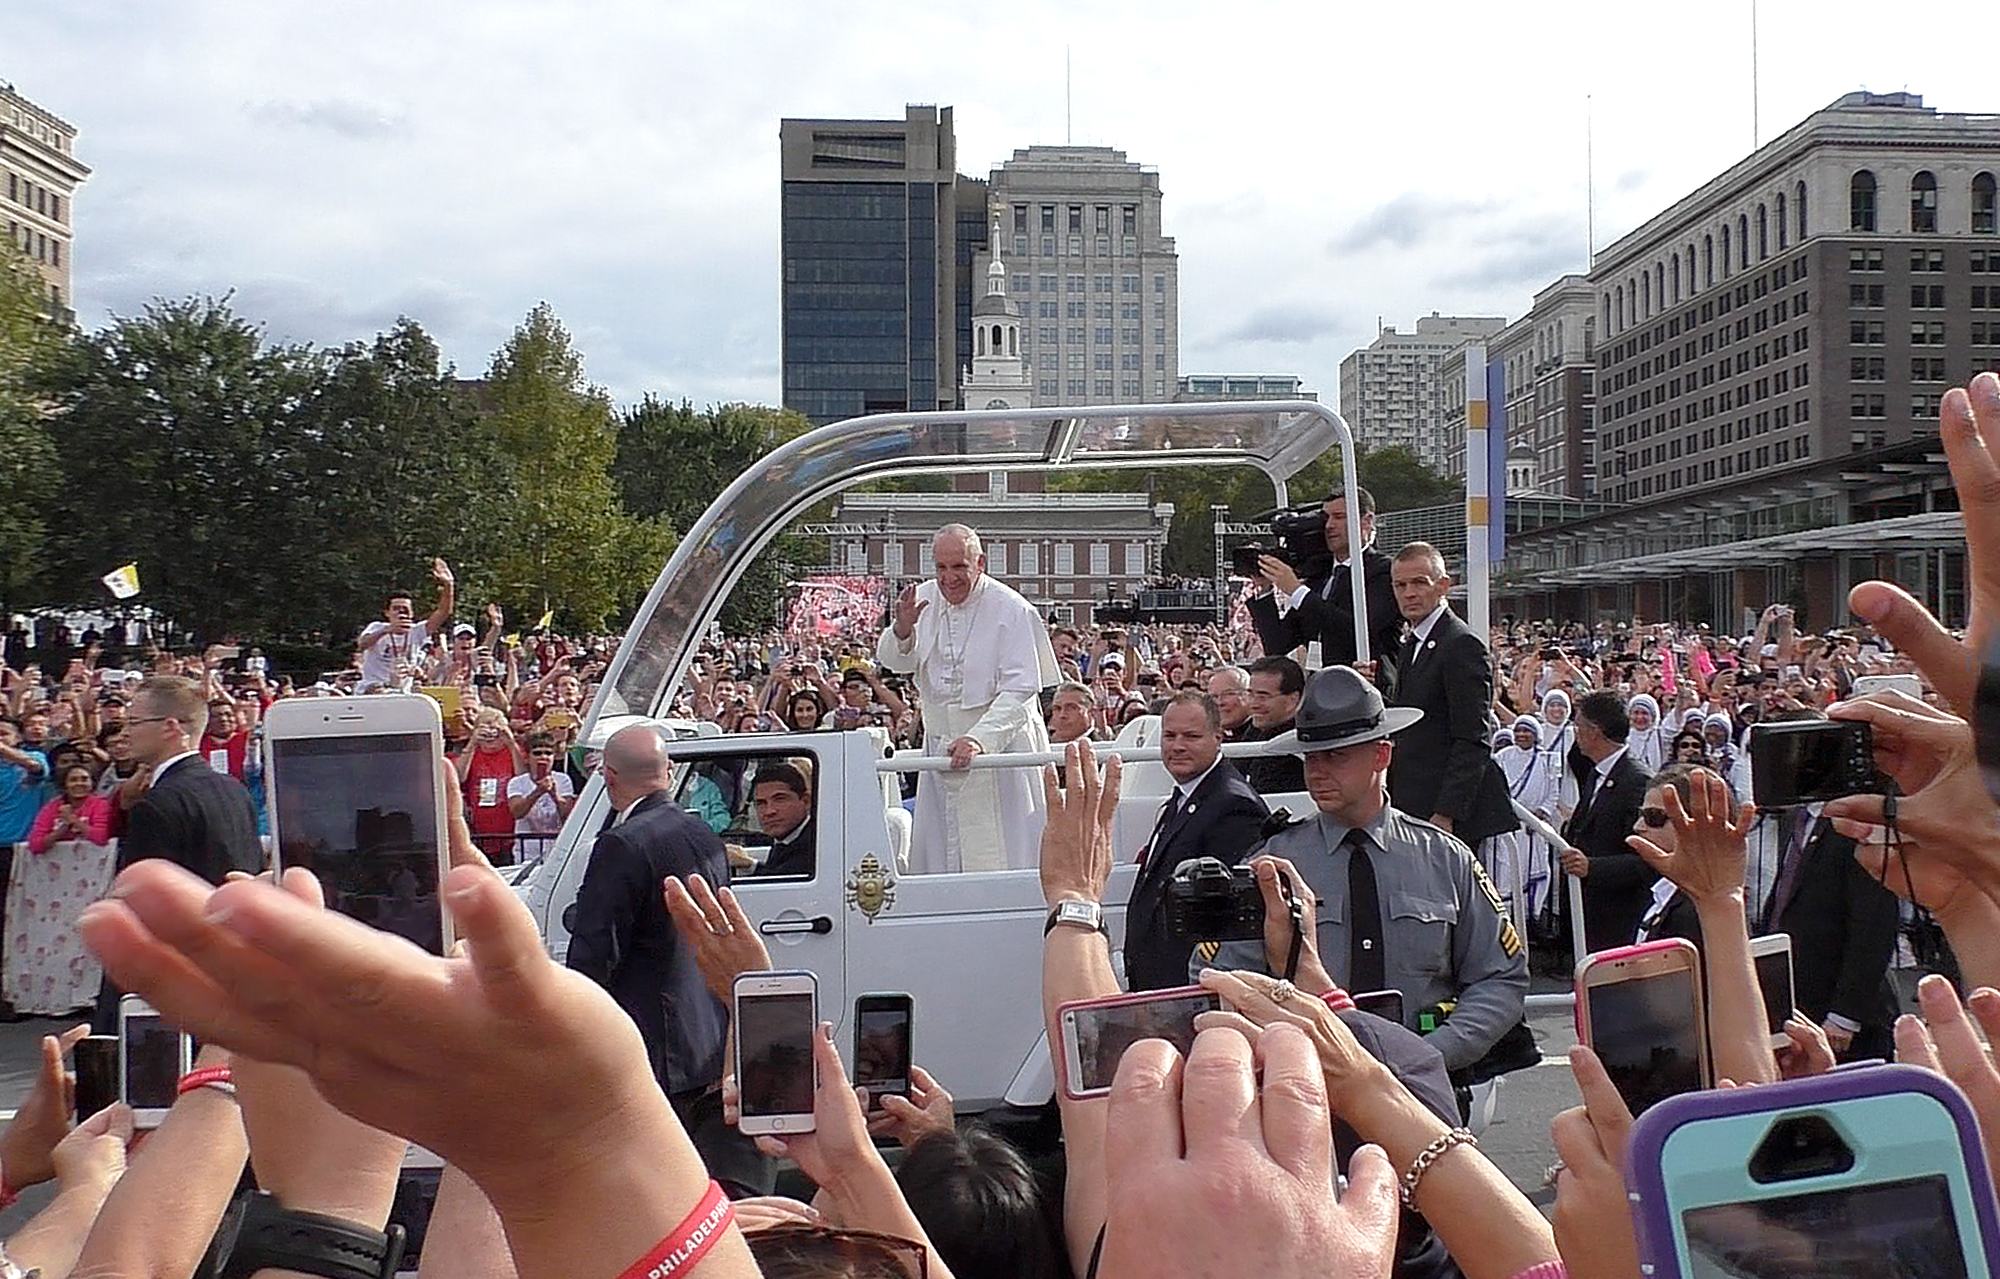 Pope Francis makes his way down Market Street before speaking at Independence Hall on September 26, 2015.